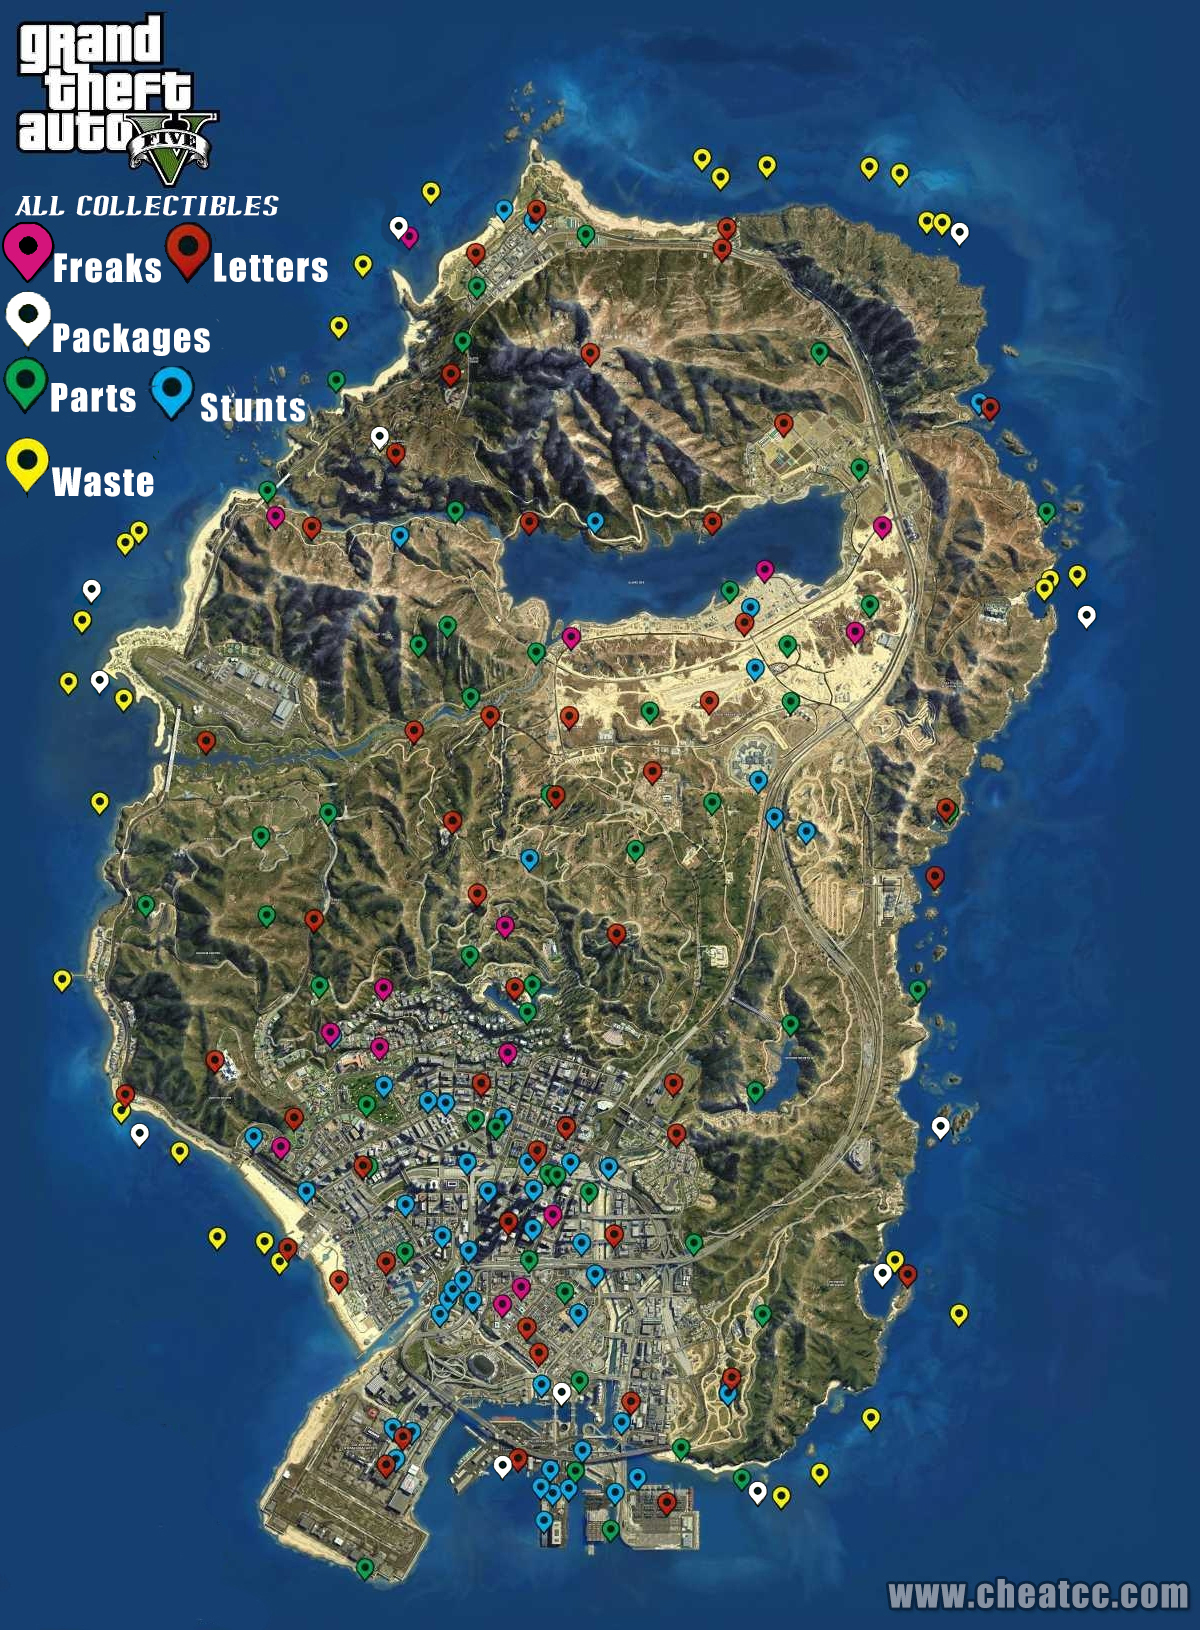 gta_5_collectibles_map.jpg